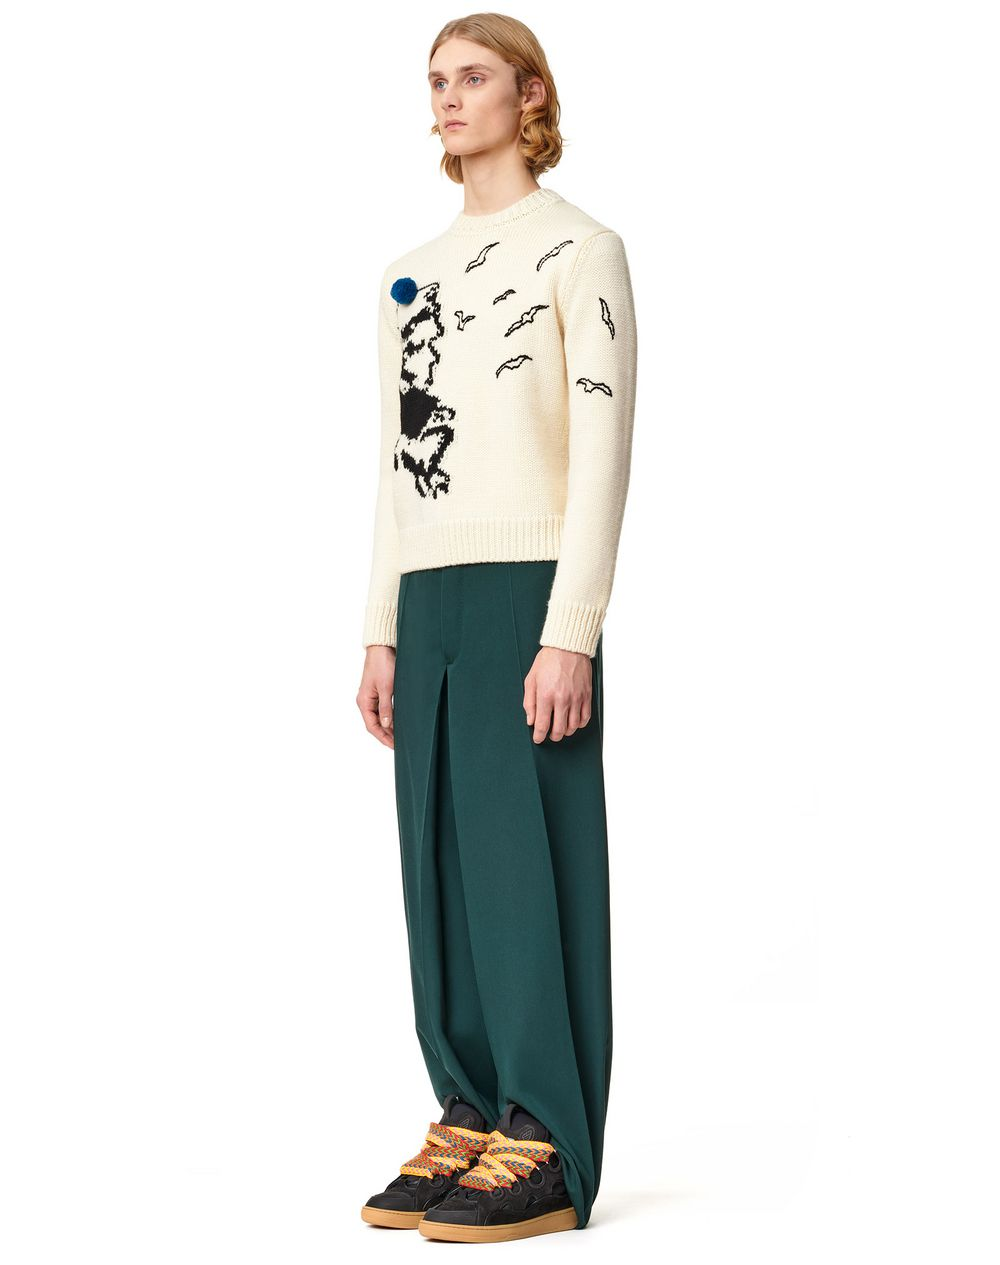 INTARSIA KNITTED SWEATER - Lanvin